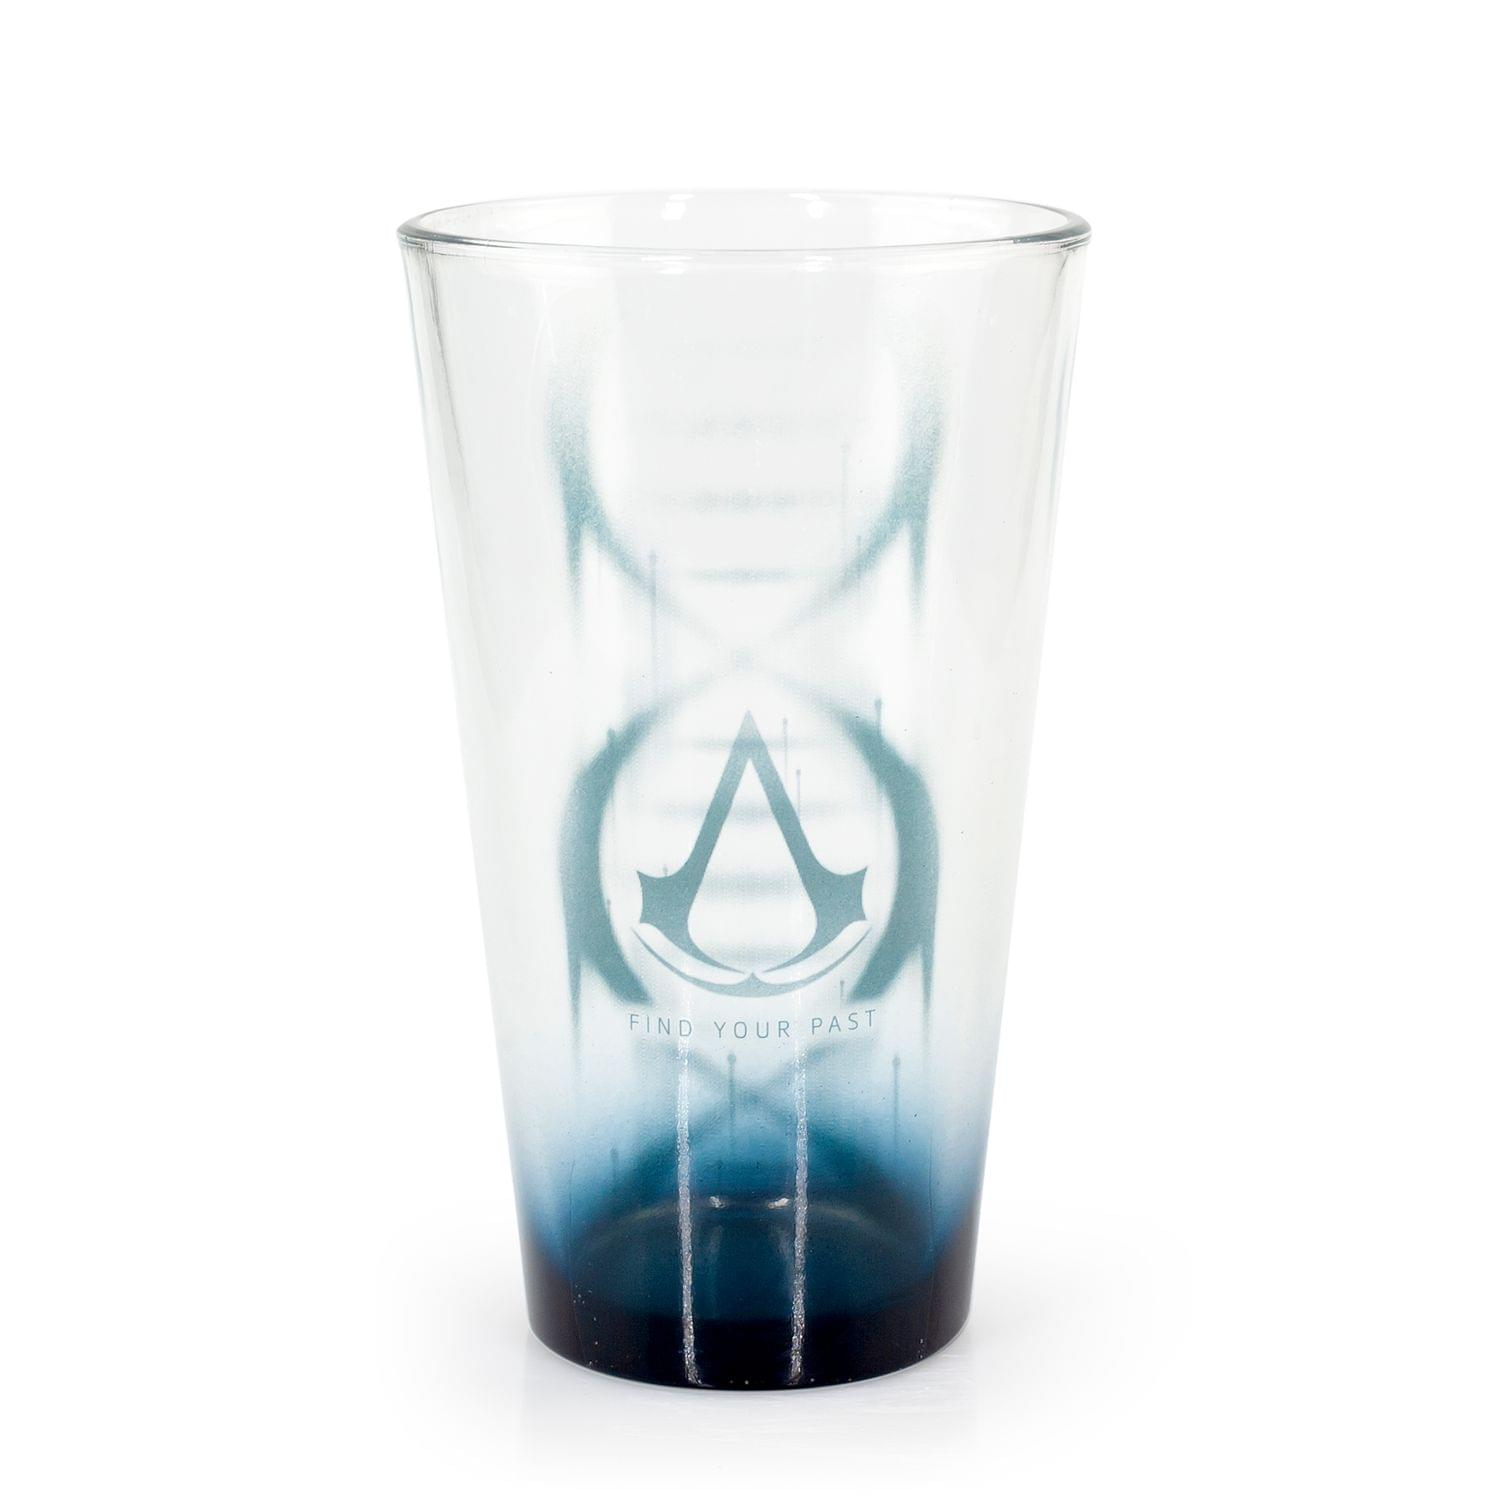 Assassin's Creed Pint Glass| Find Your Past Text| 16 oz